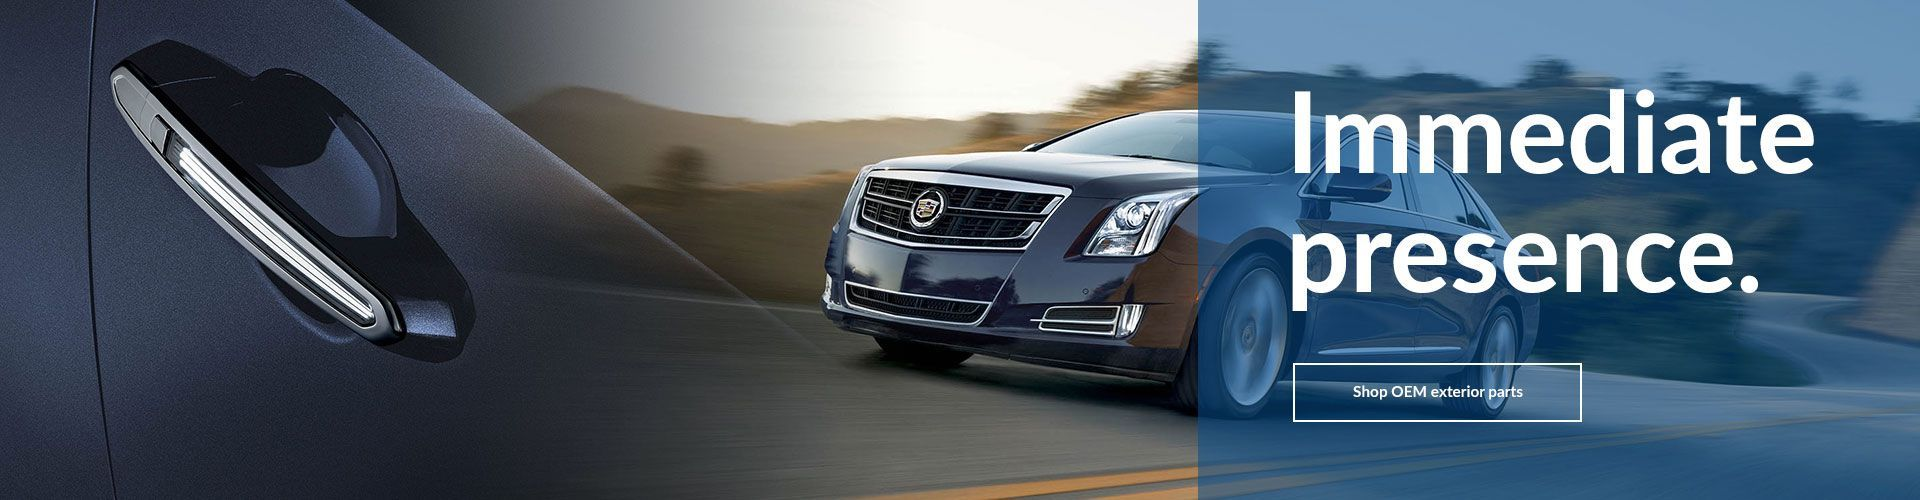 Cadillac Accessories at Great Prices